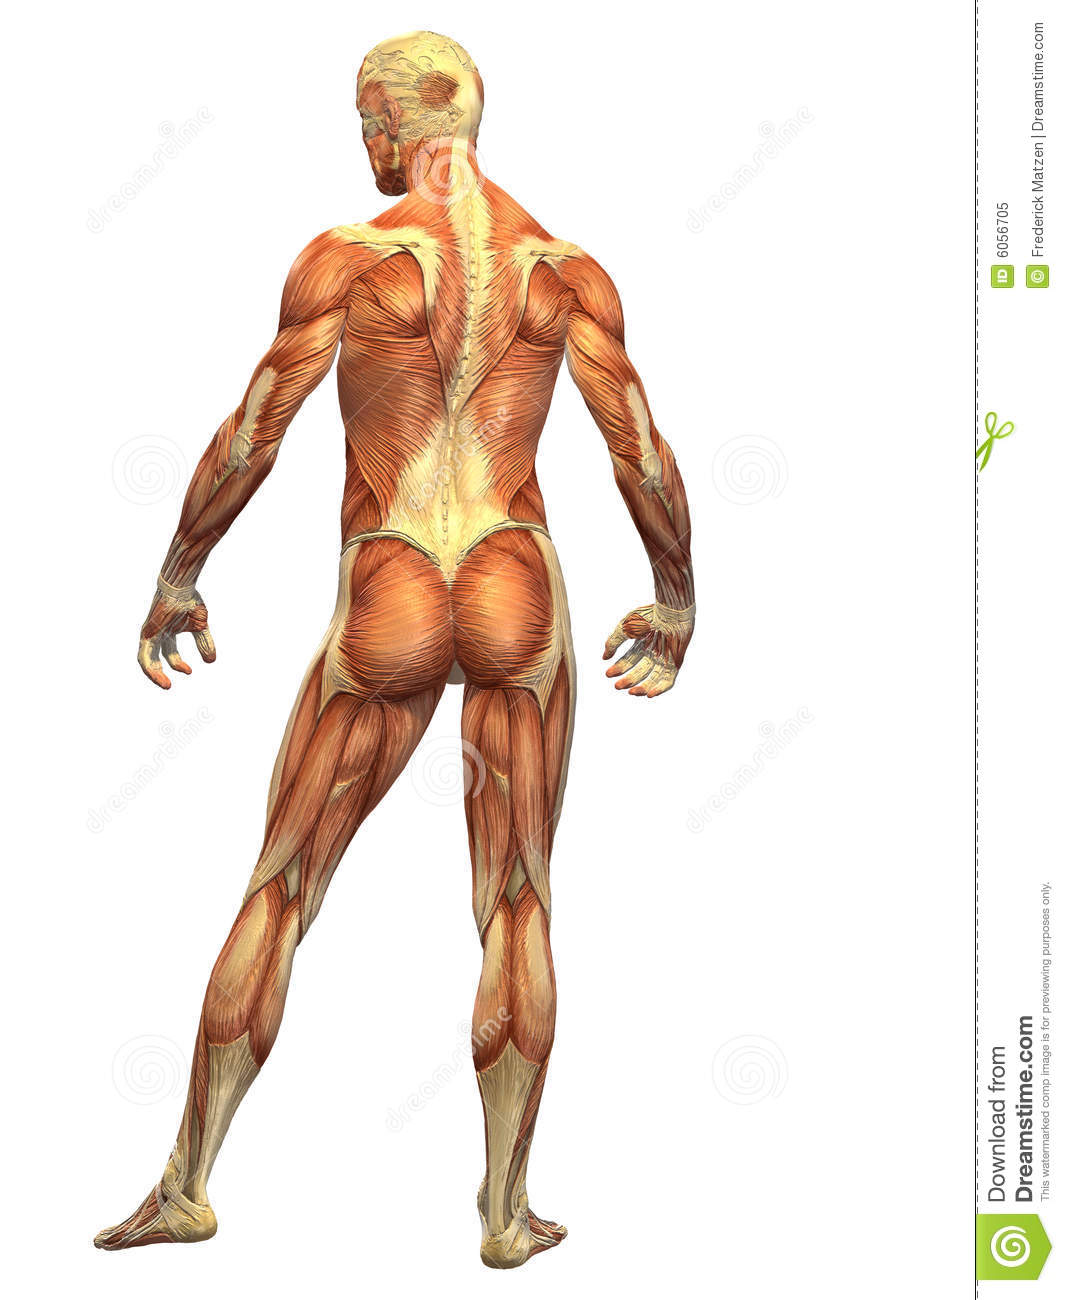 Human Body Muscle - Male Back Stock Illustration - Illustration of ...